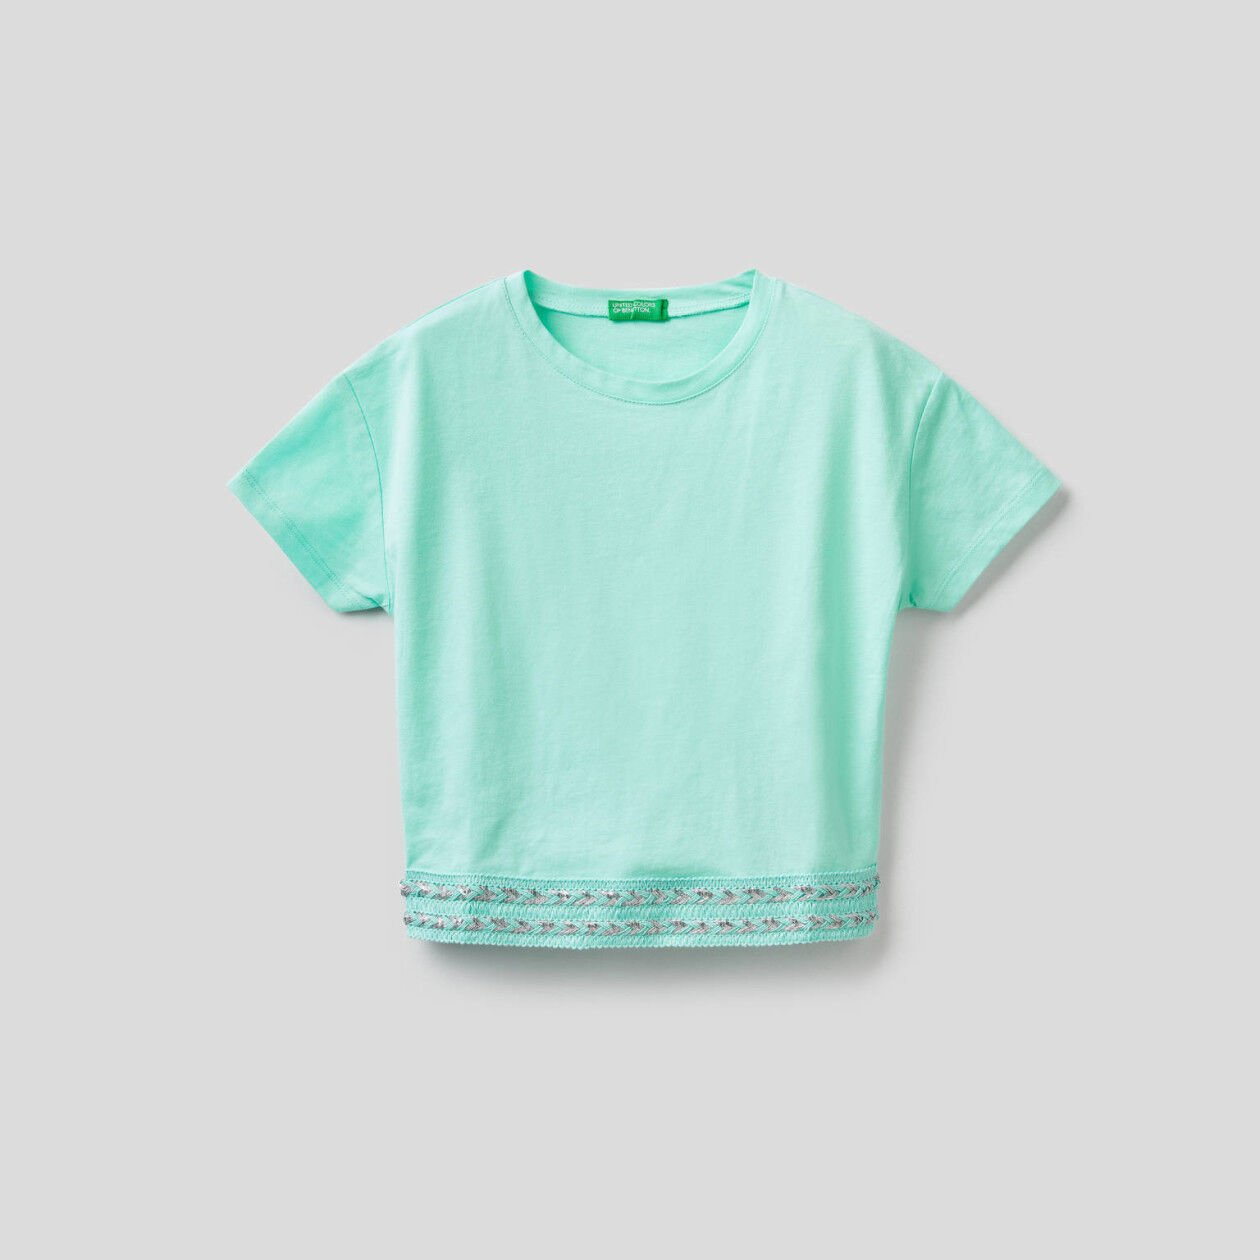 Cotton t-shirt with cropped pocket